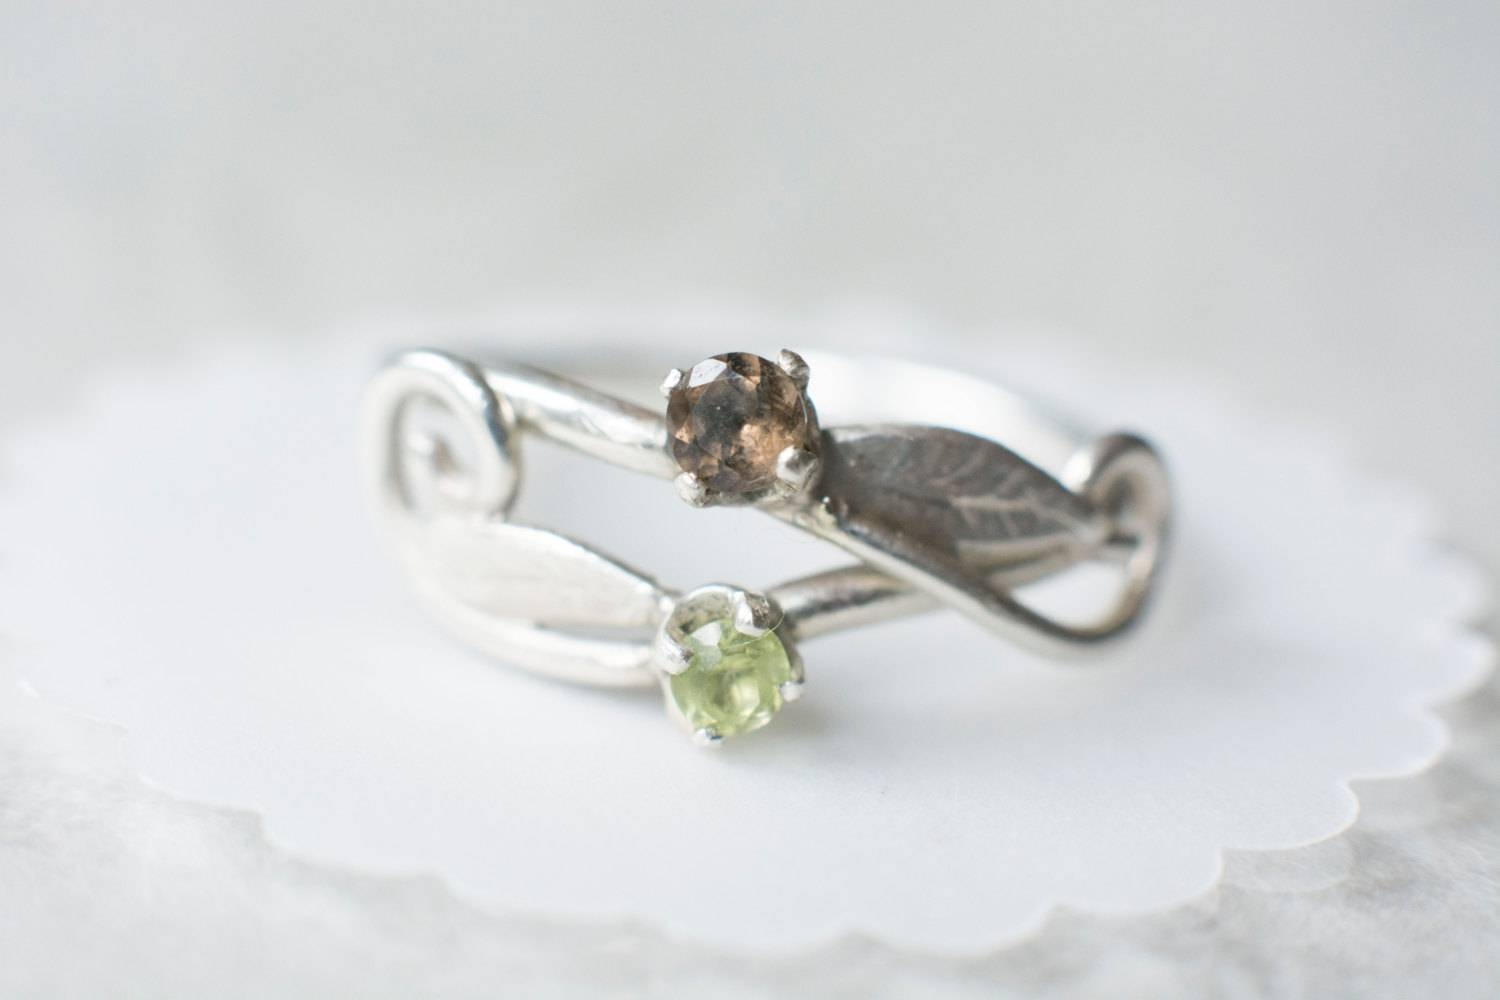 Swirly Elvish Forest Leaf Engagement Ring With Stones: Throughout Elven Engagement Rings (View 12 of 15)